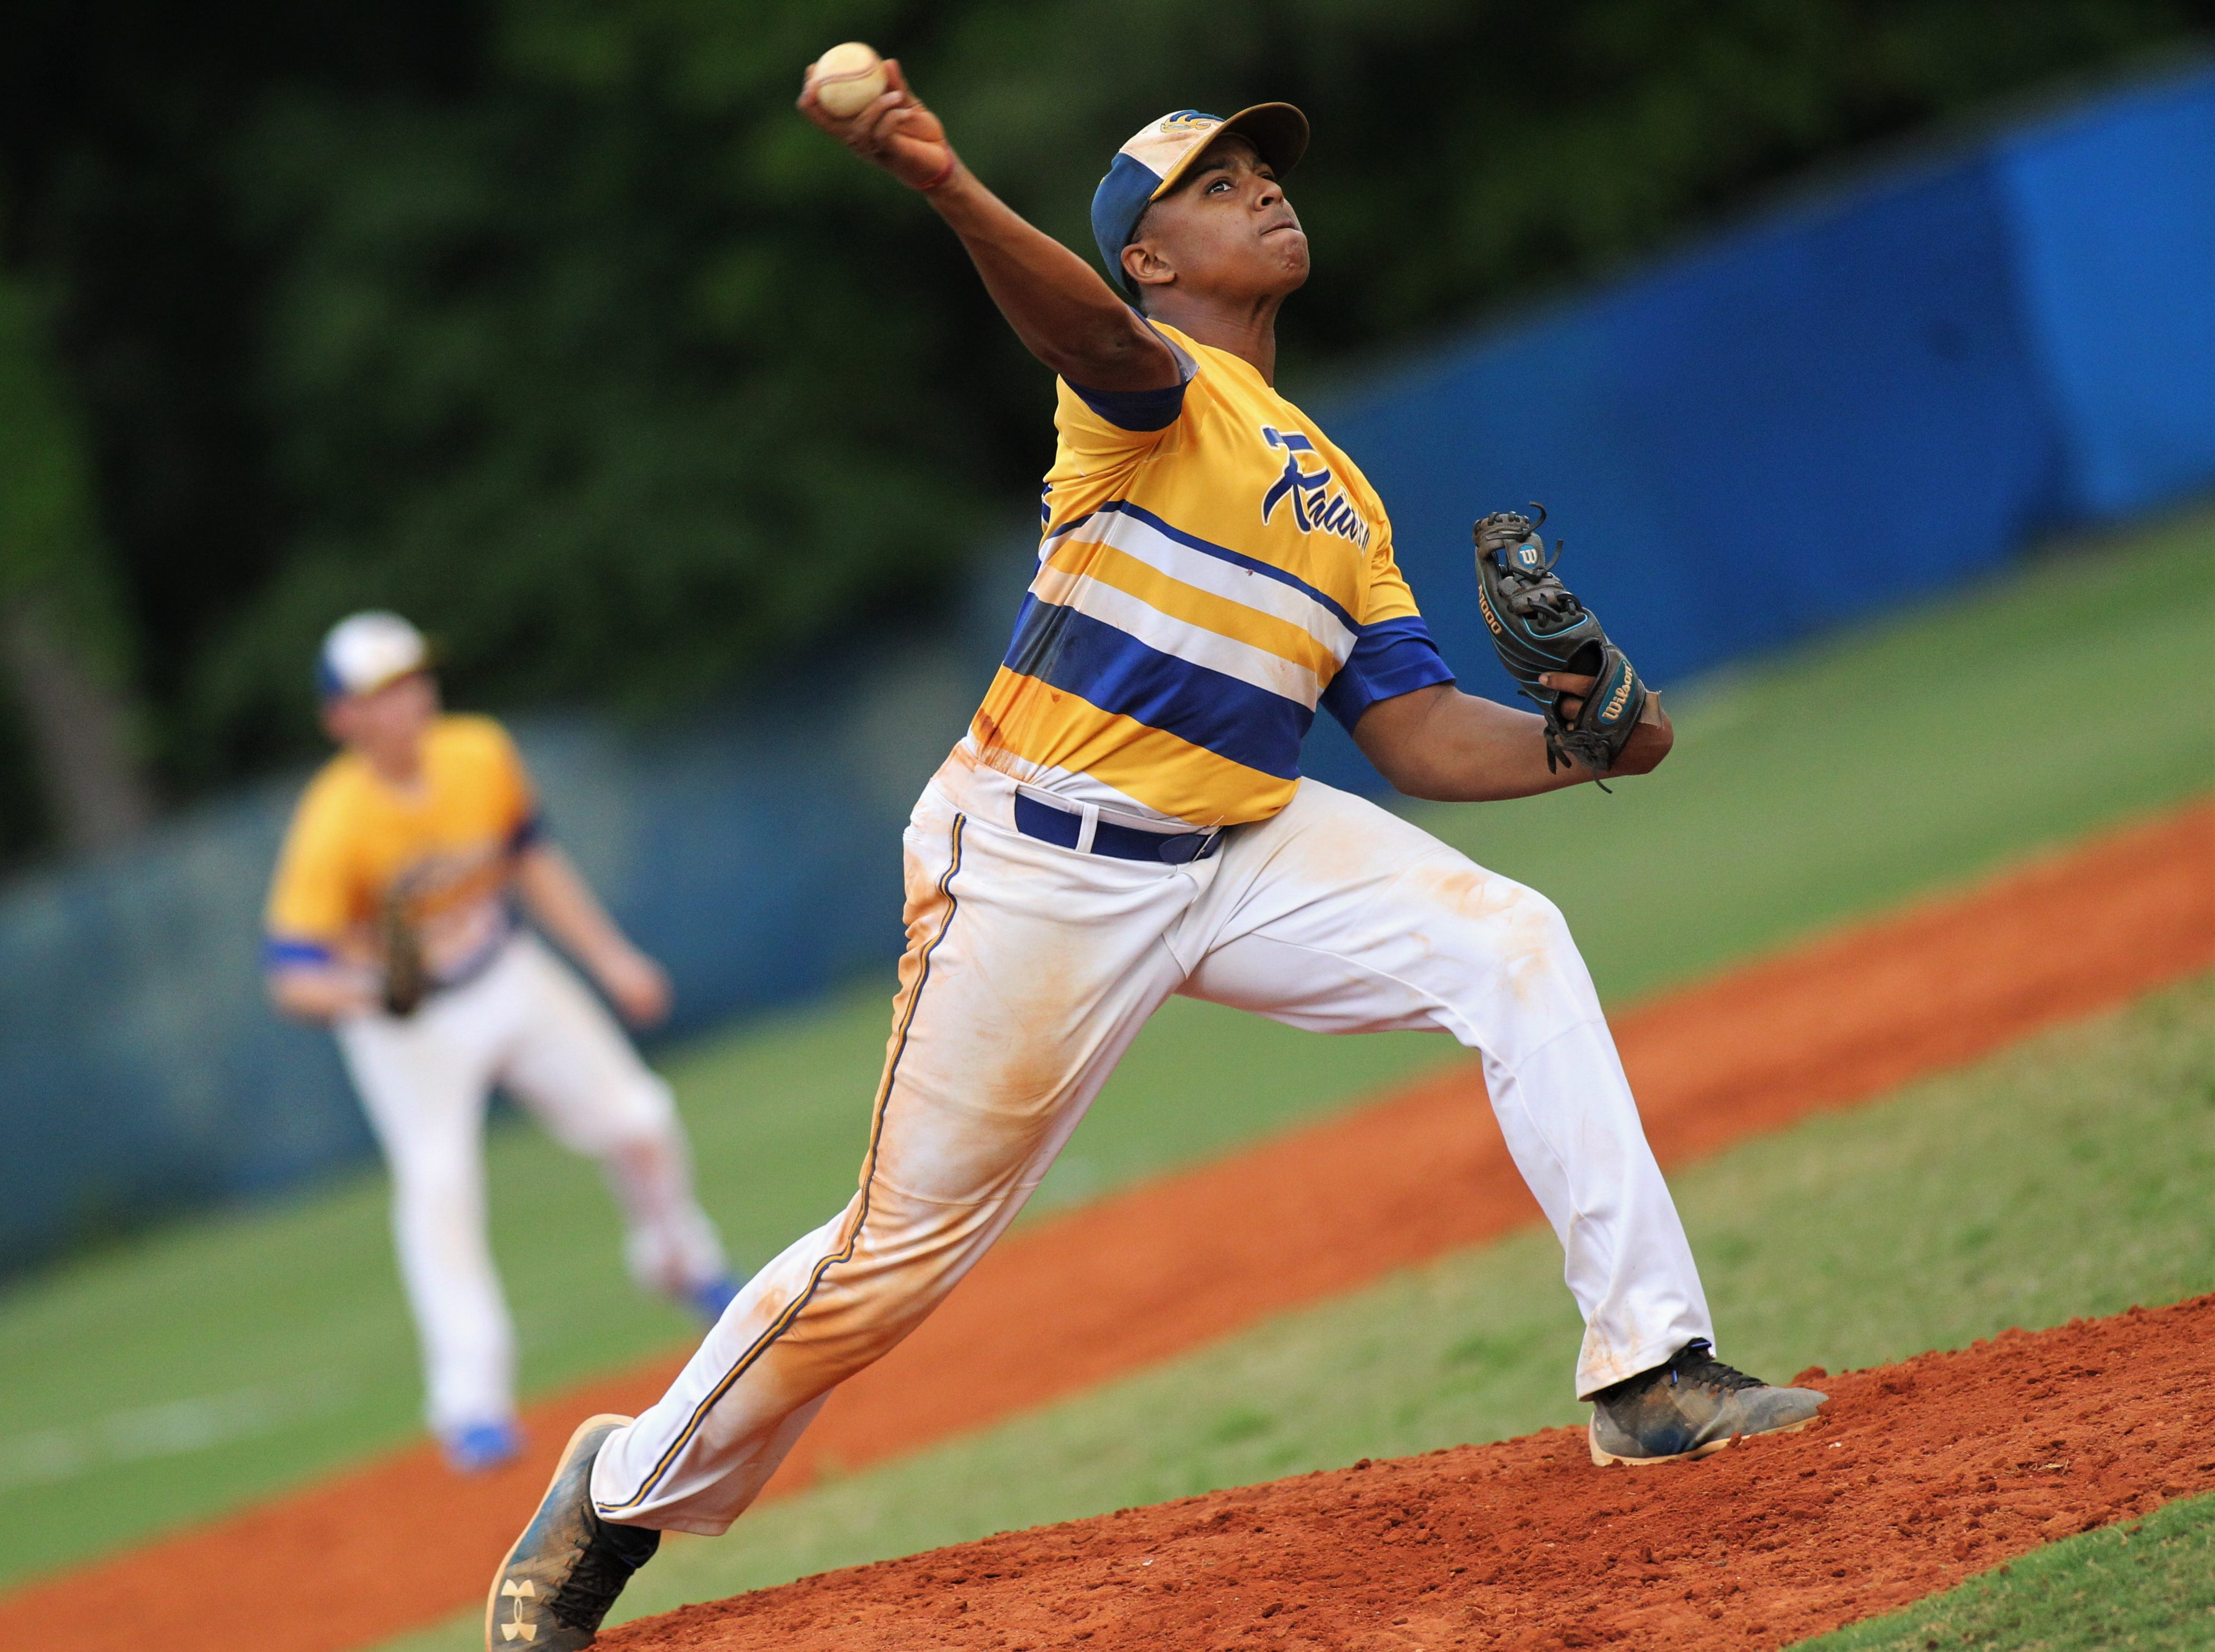 Rickards senior Norris Leland pitches as Rickards beat Gadsden County 18-0 in three innings on Friday, April 12, 2019.